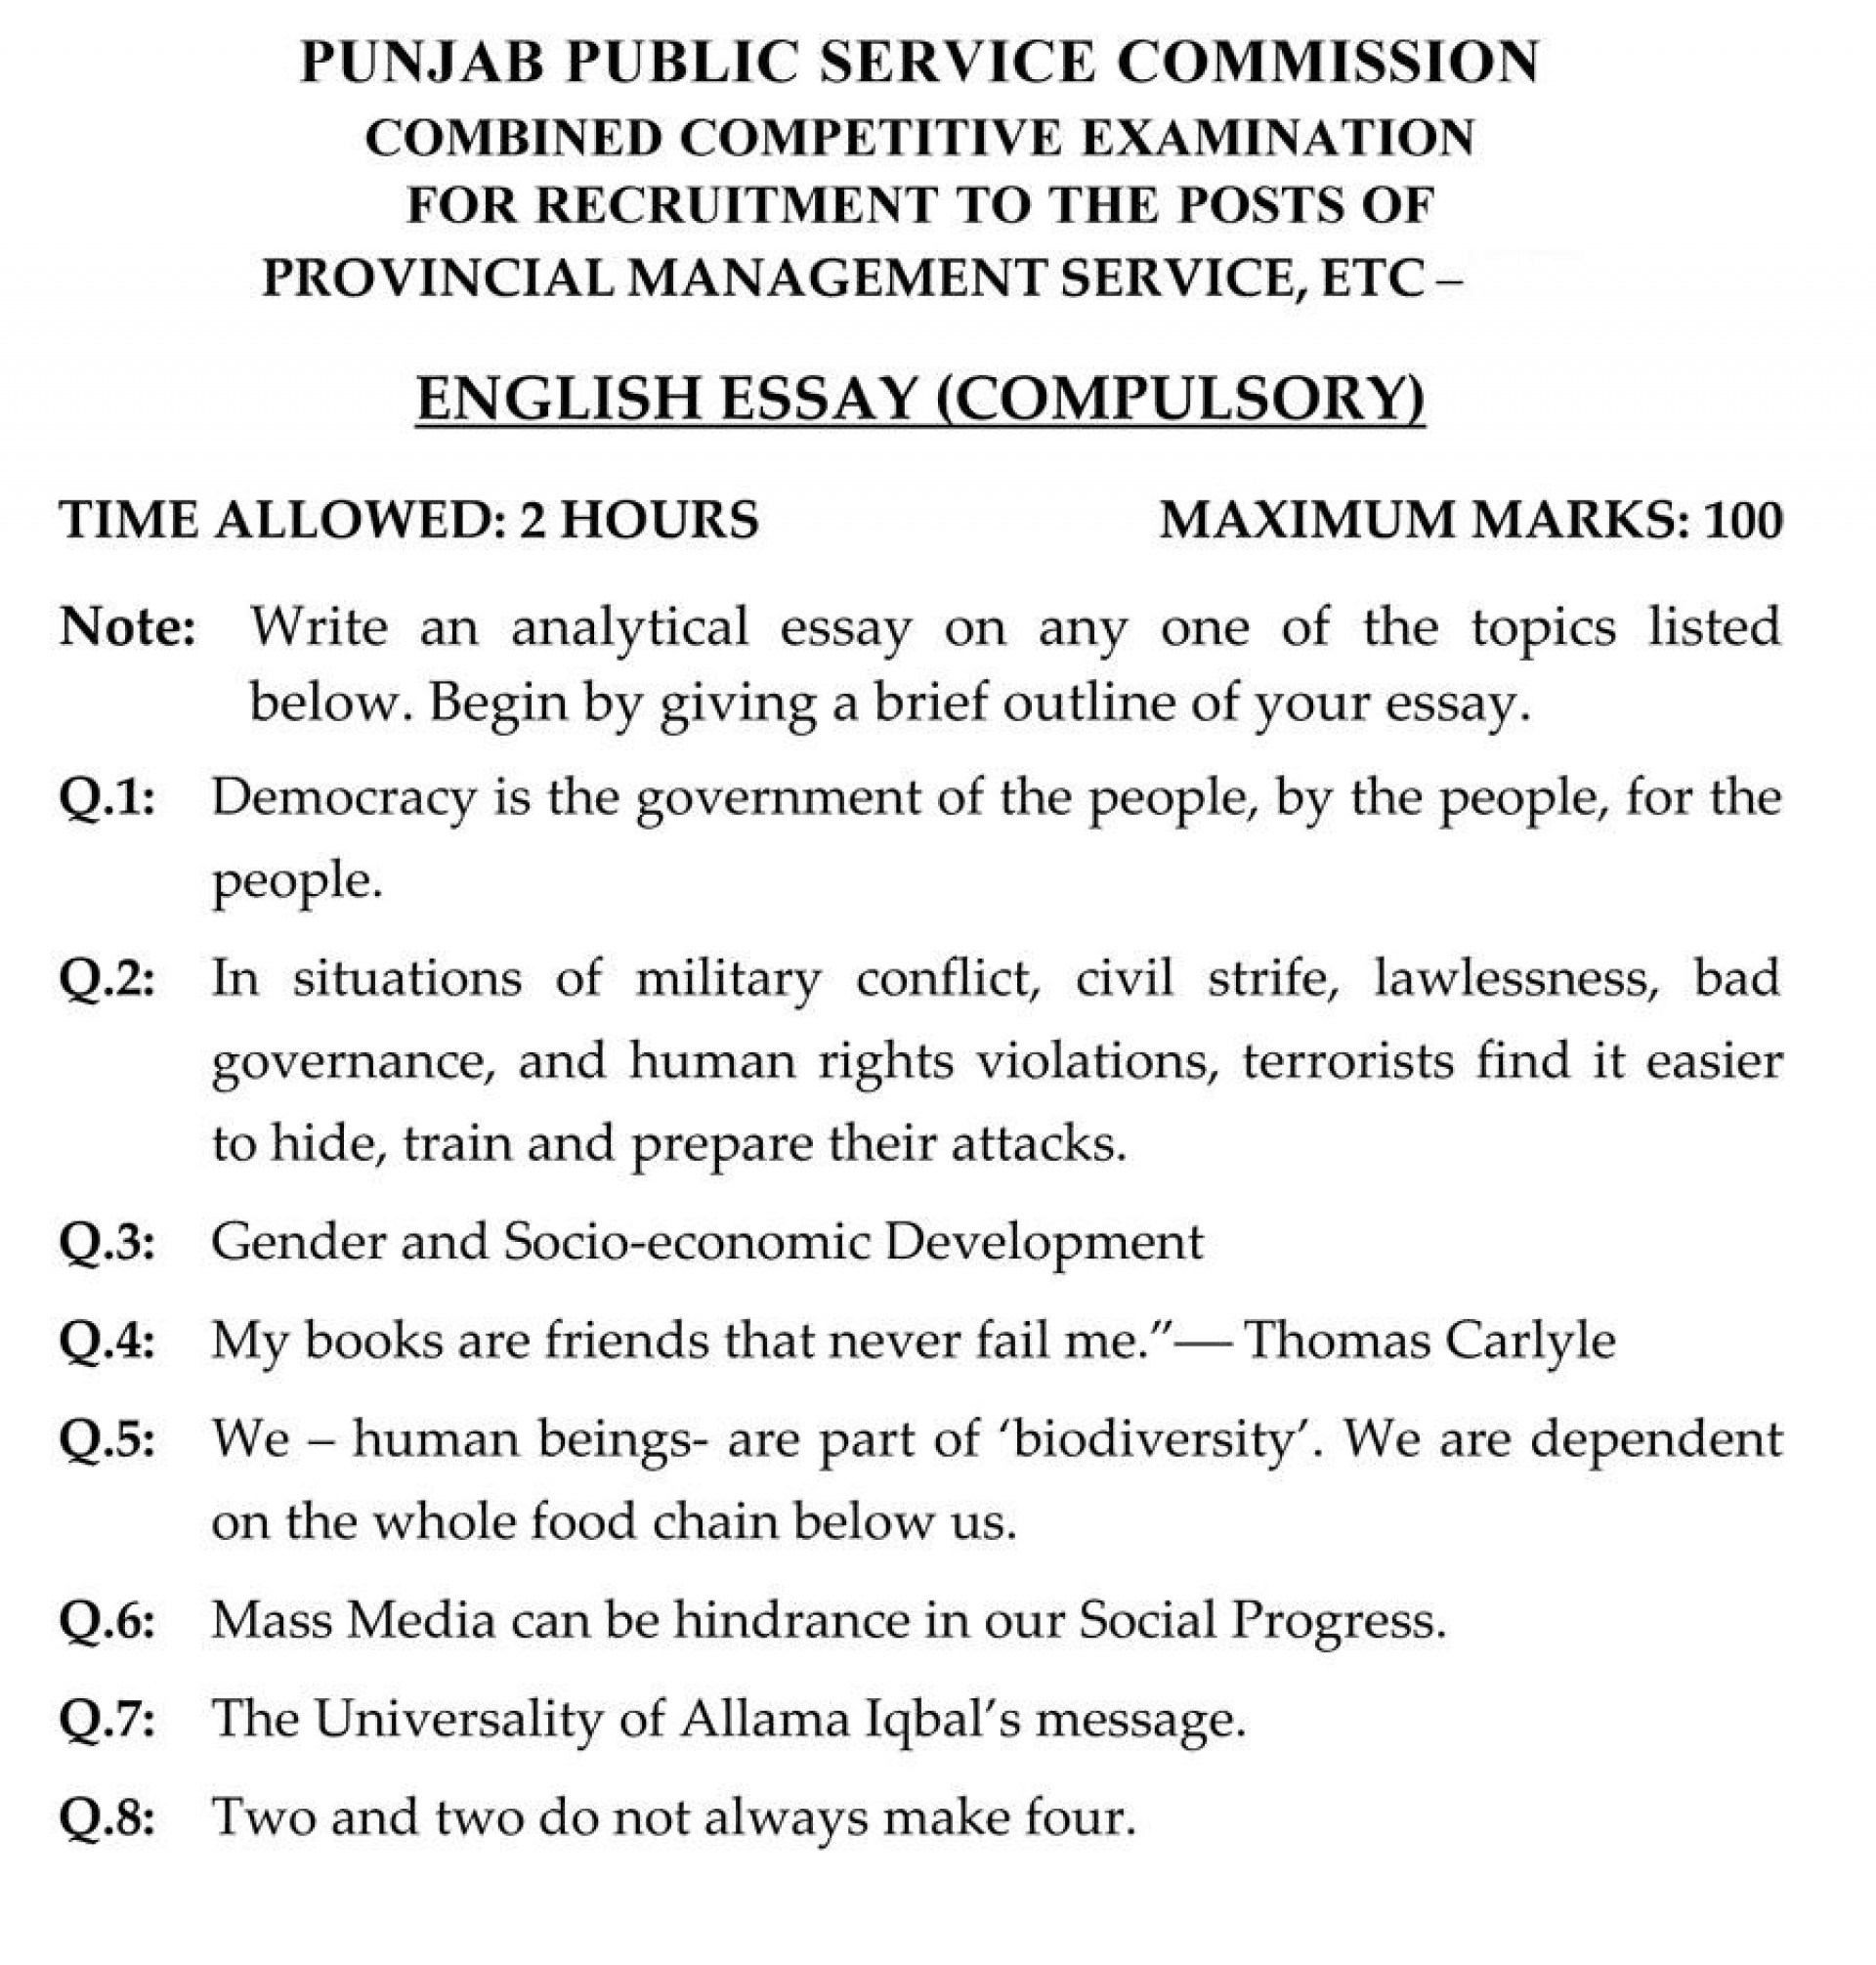 010 Essay Papers Example Pms Past Fearsome Paper Upsc 2014 Of 2015 Css 2016 1920